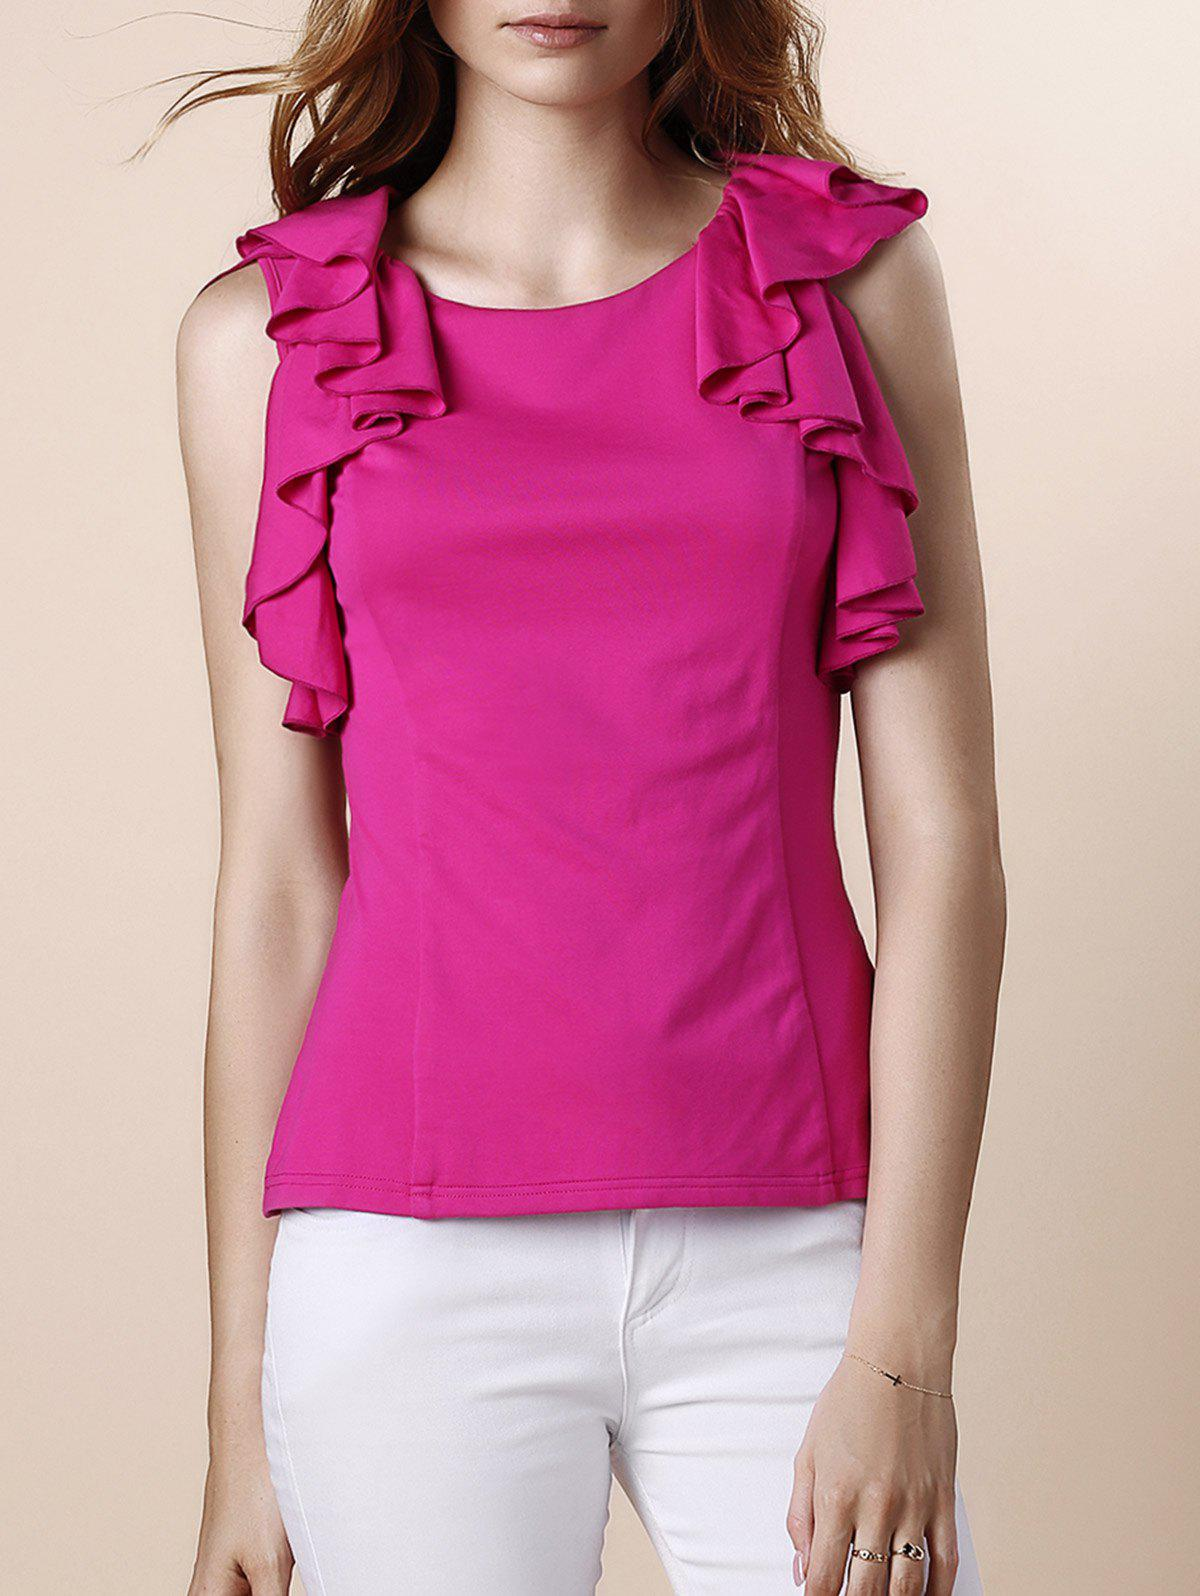 Sweet Women's Round Neck Ruffles Sleeveless Blouse - ROSE L